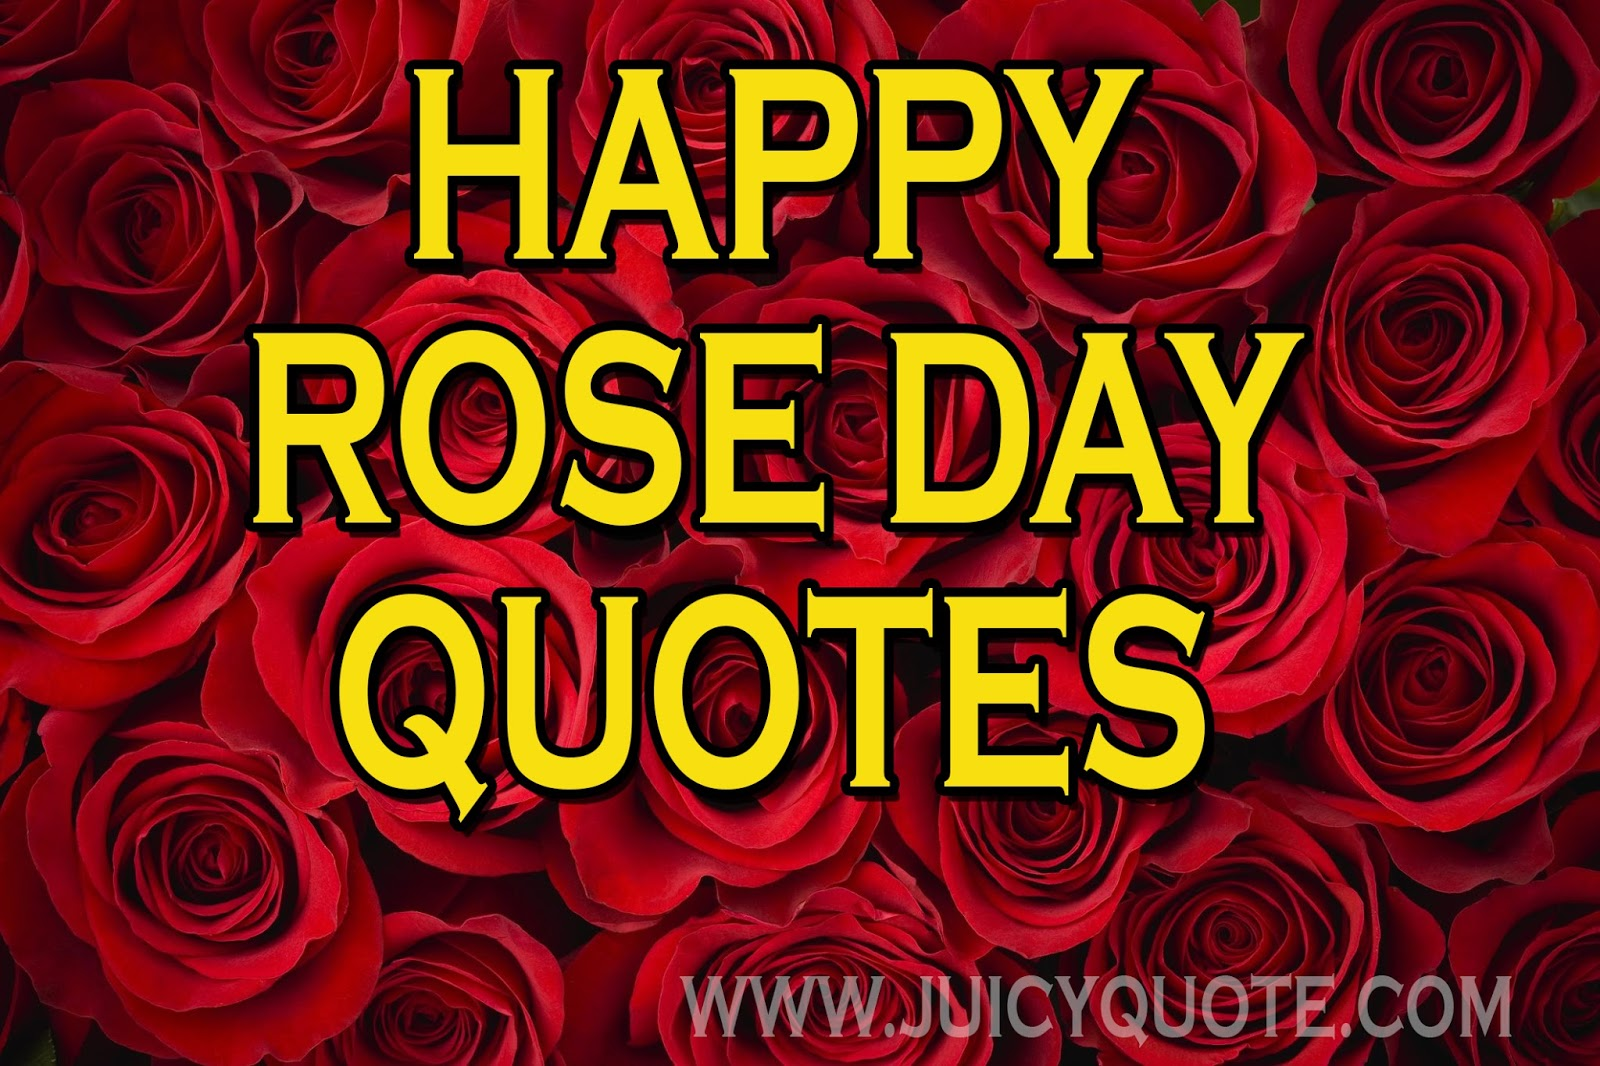 Happy rose day wishesquotes and greetings juicy quote rose day quotes and messages kristyandbryce Image collections